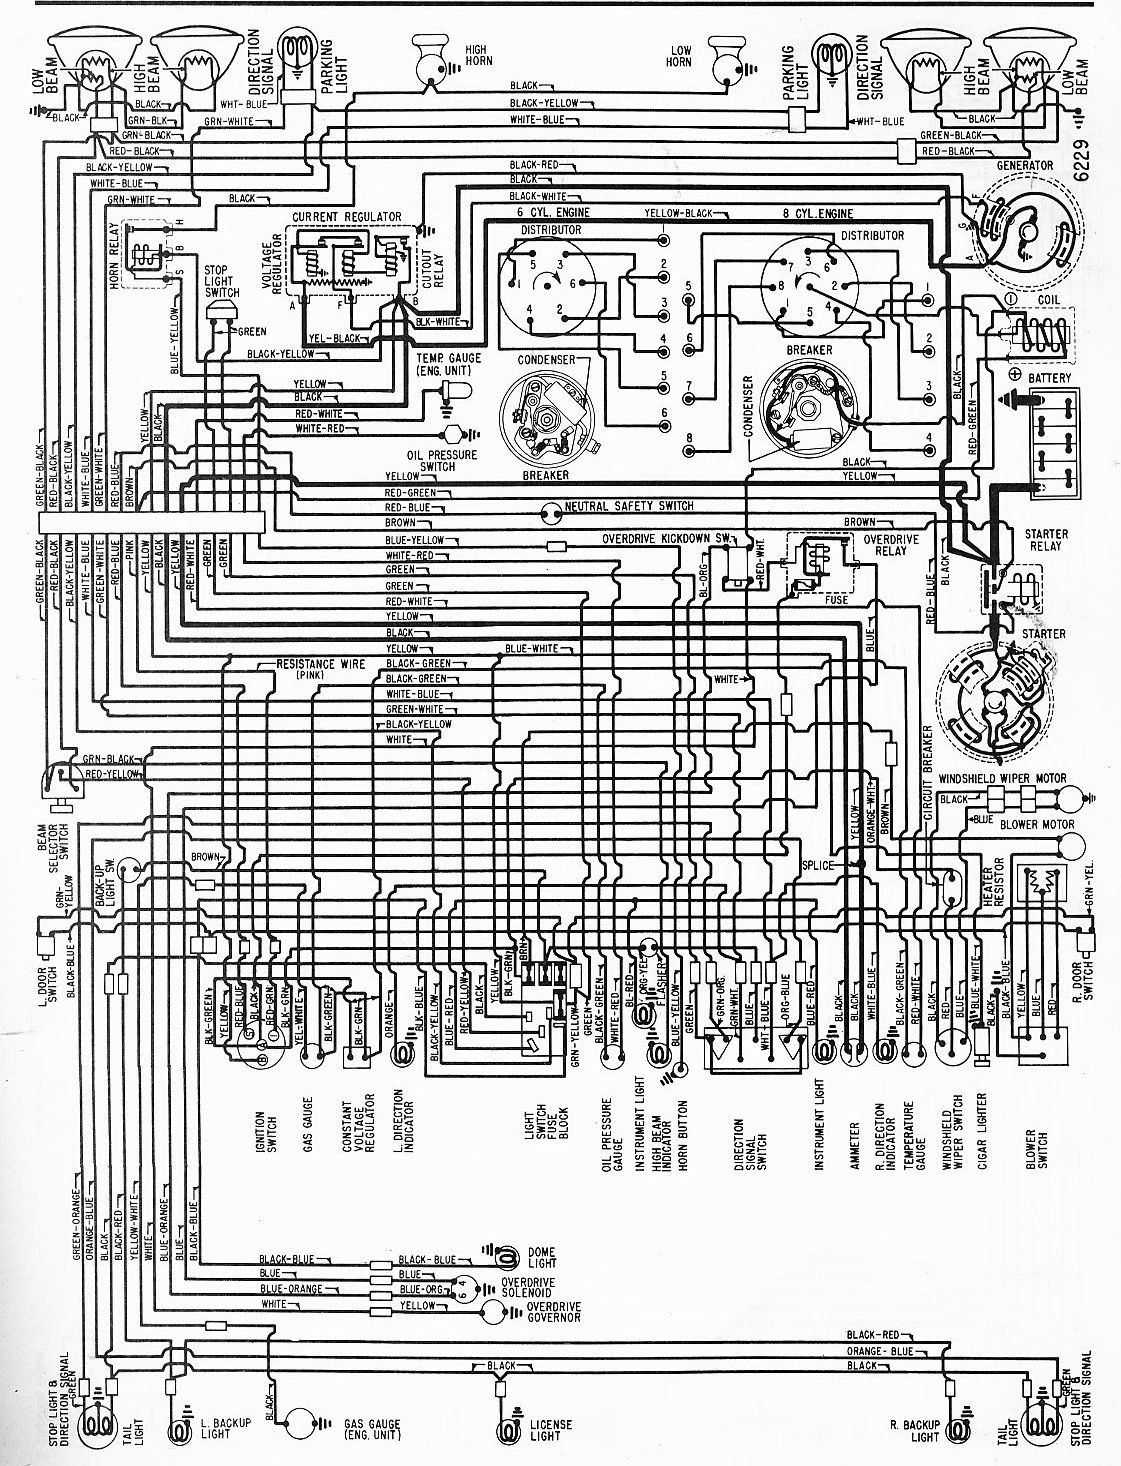 small resolution of 1970 chevy c10 fuse box diagram wiring diagram portal with regard to 1972 chevy truck wiring diagram